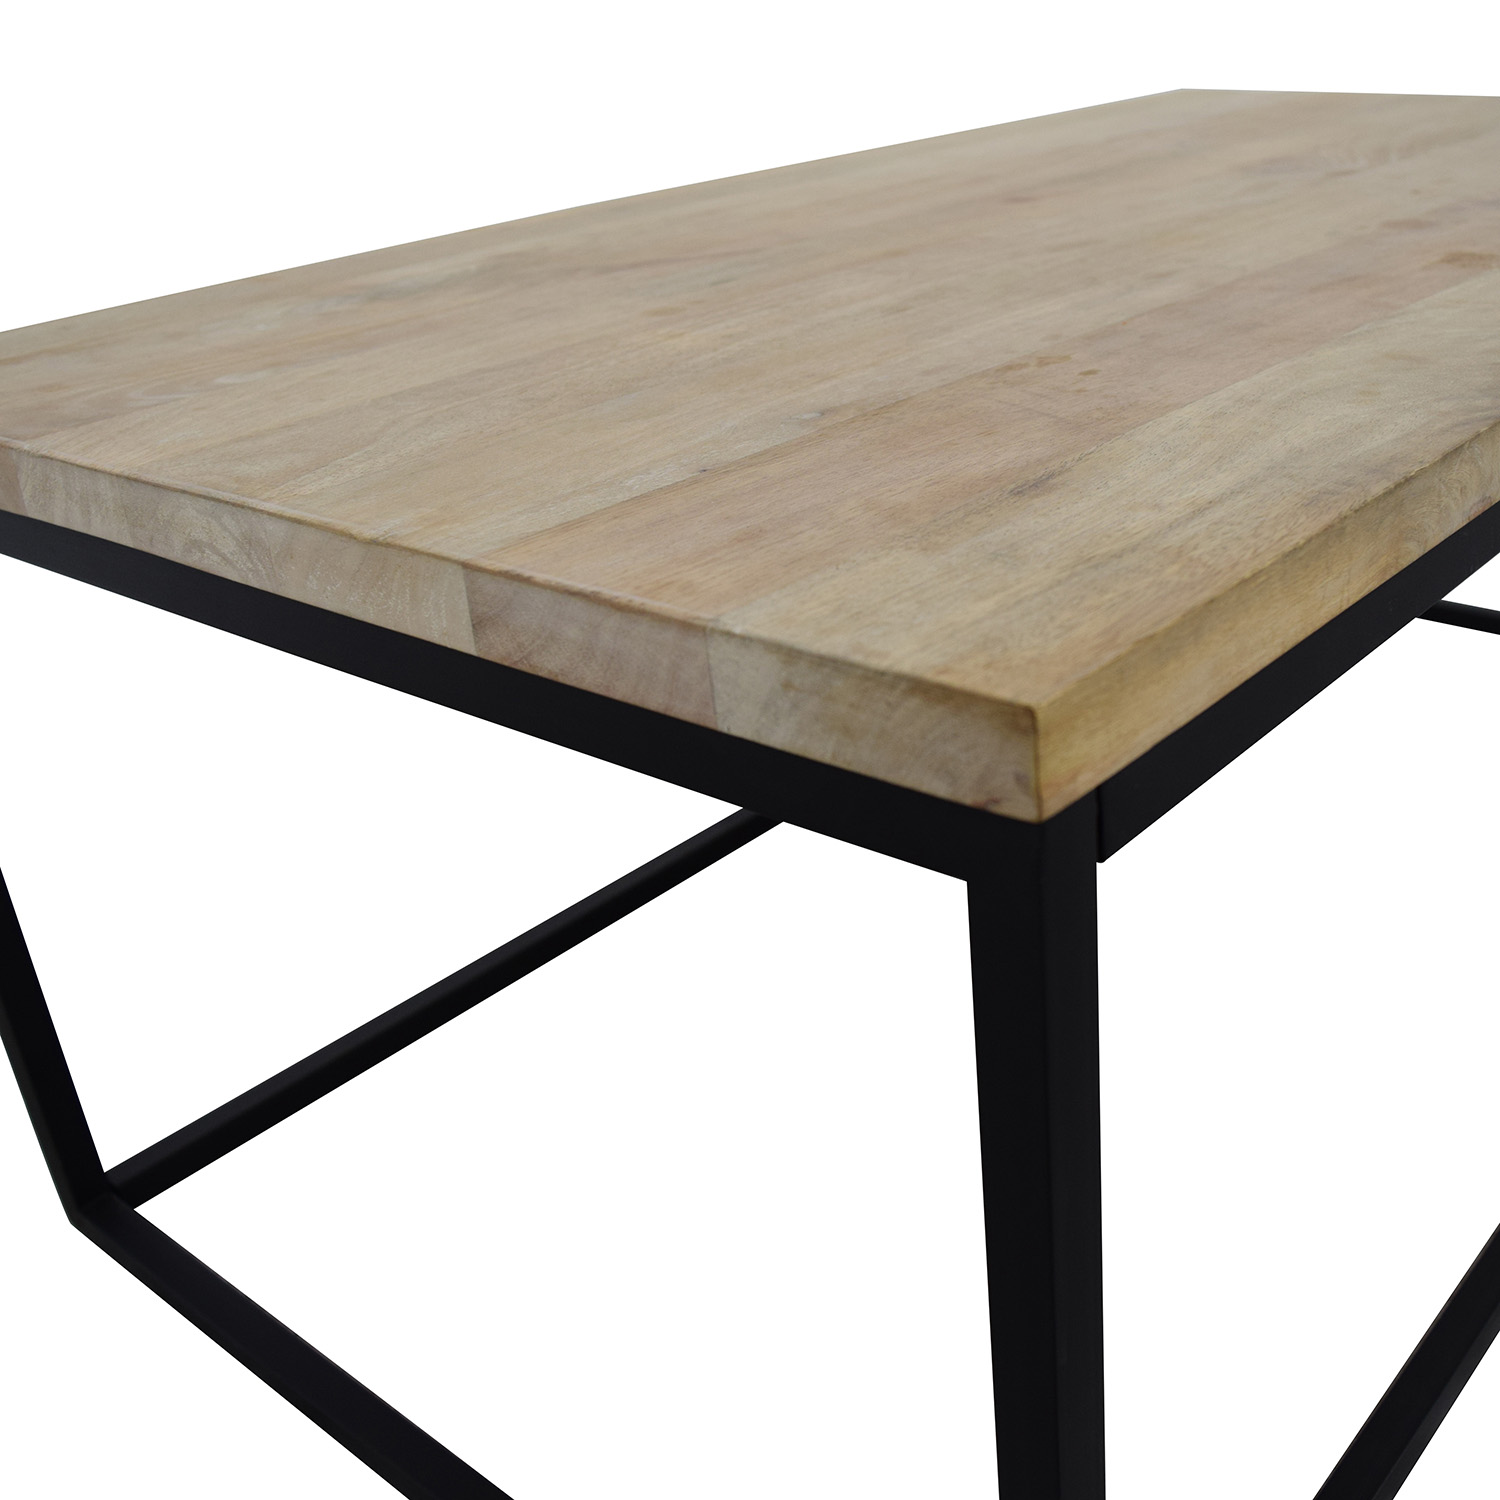 OFF West Elm West Elm Box Frame Coffee Table Tables